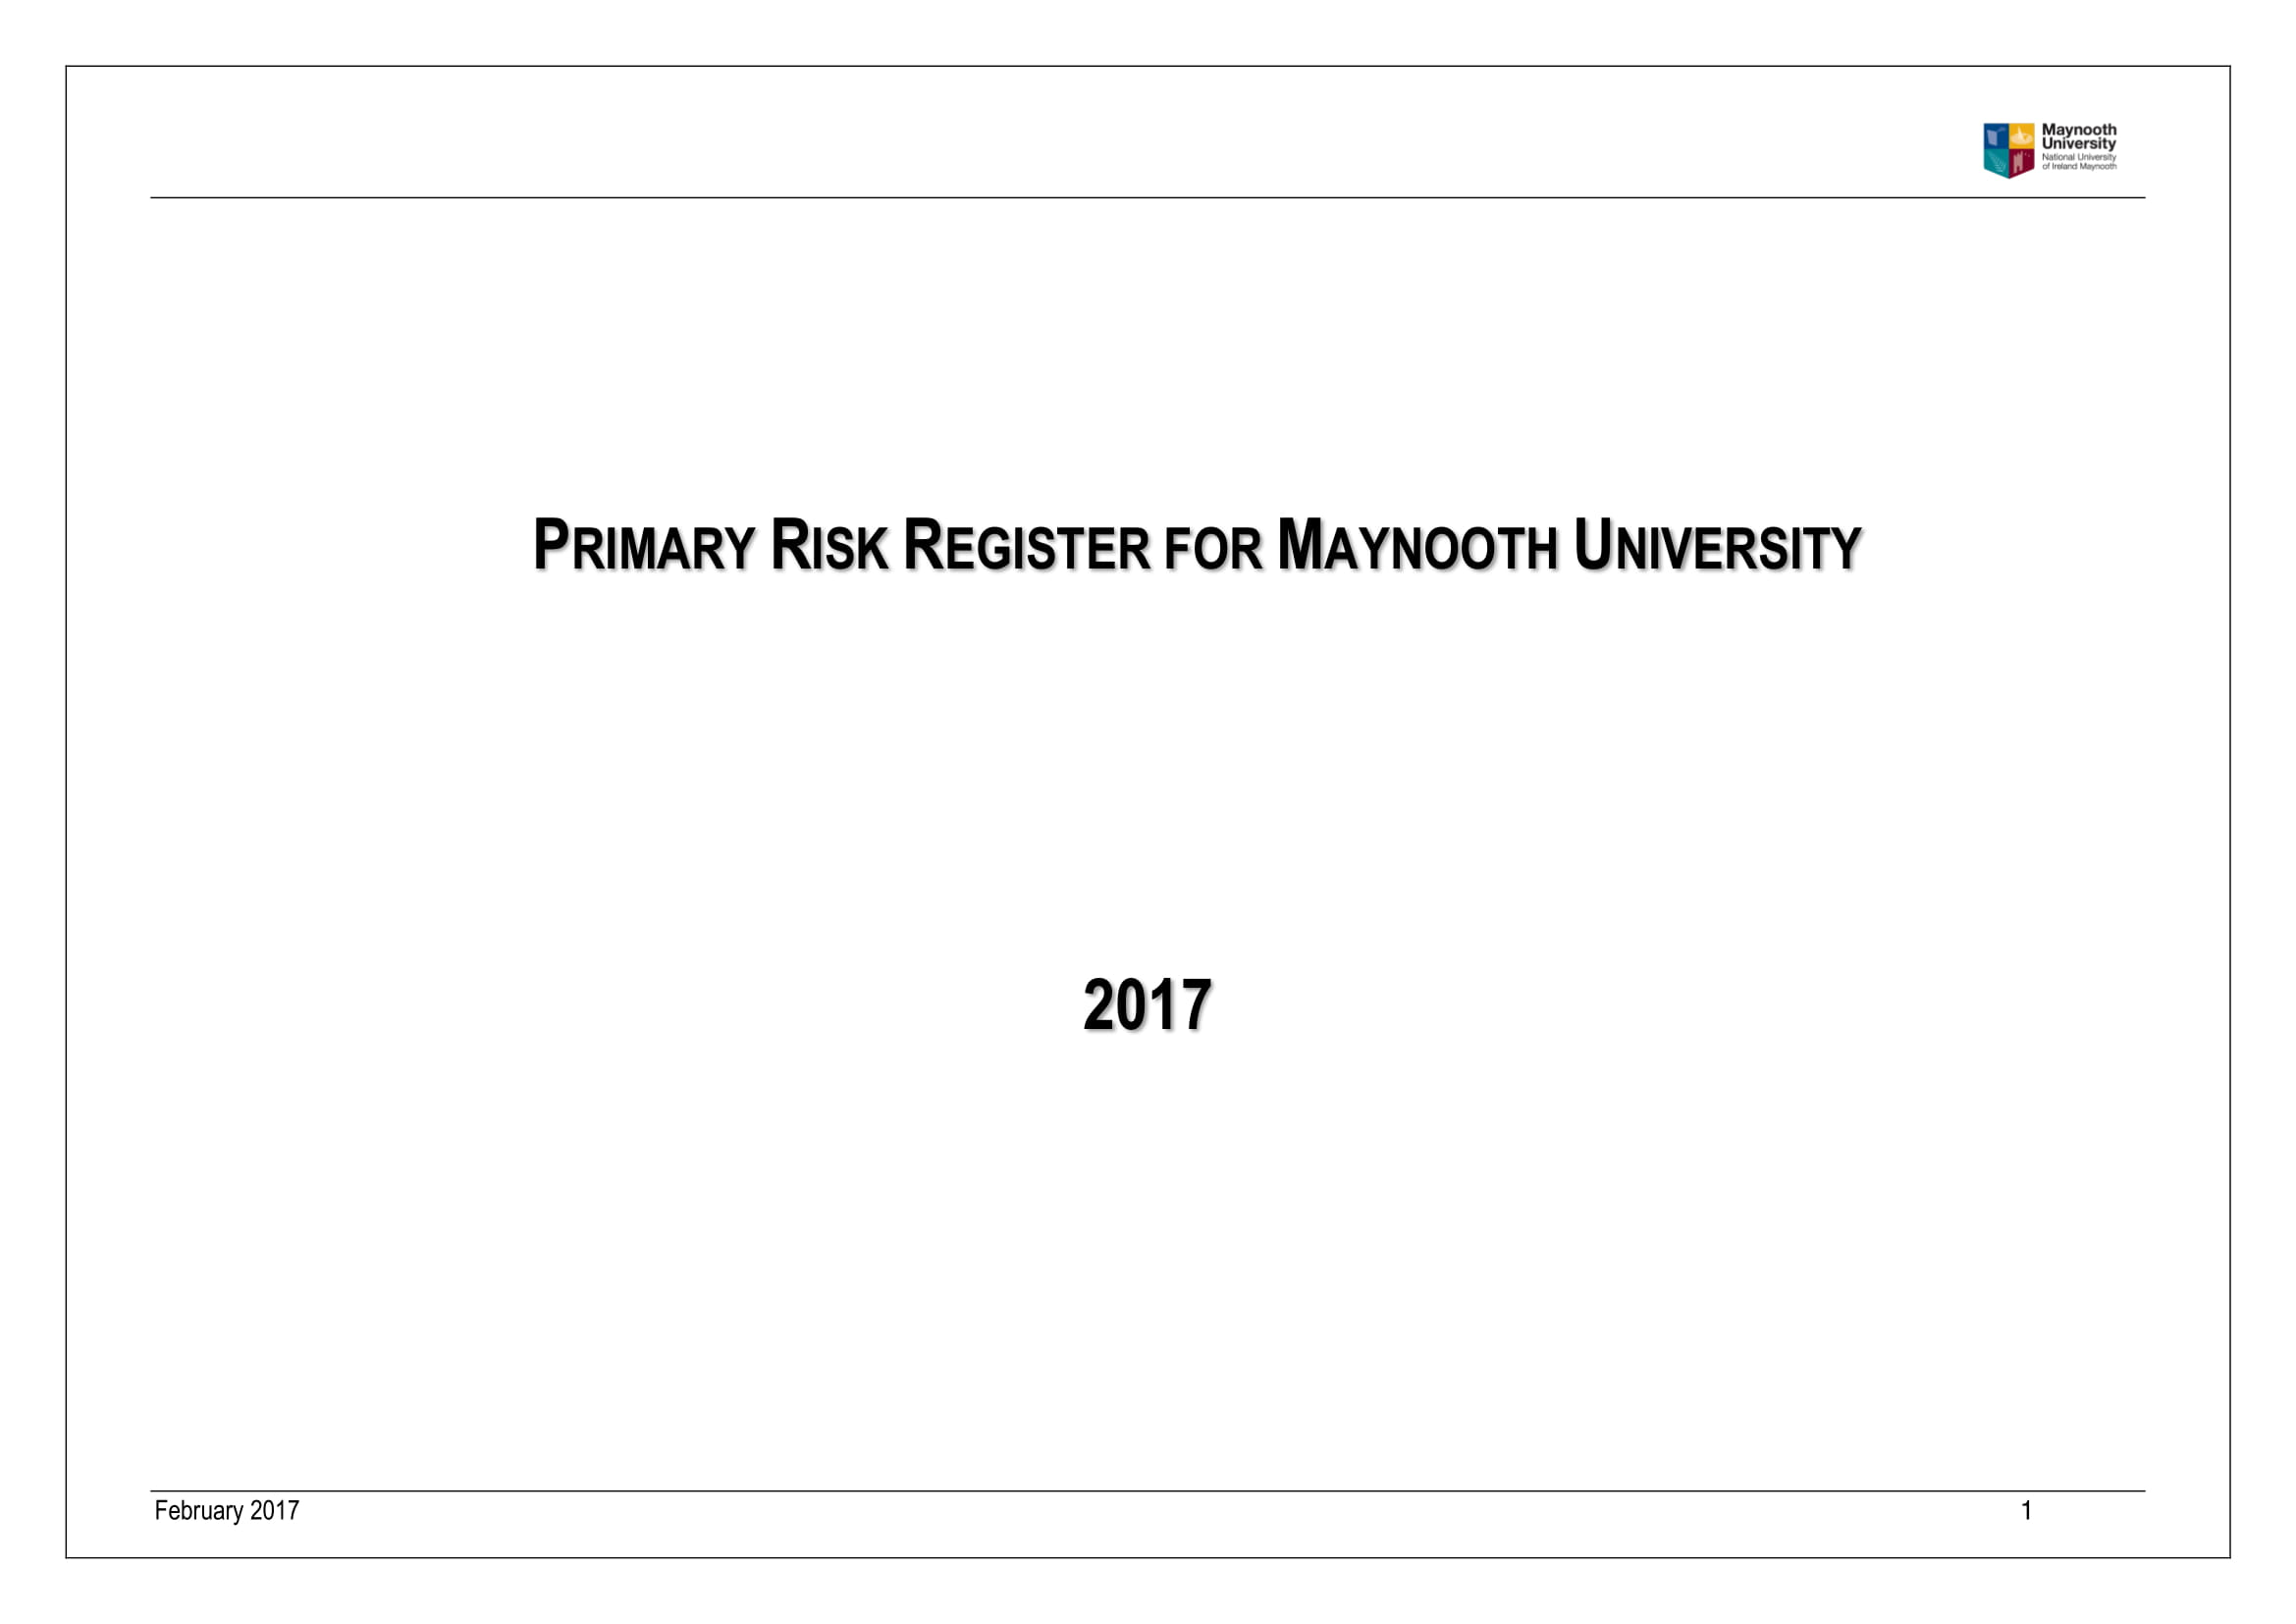 example of primary risk register for maynooth university